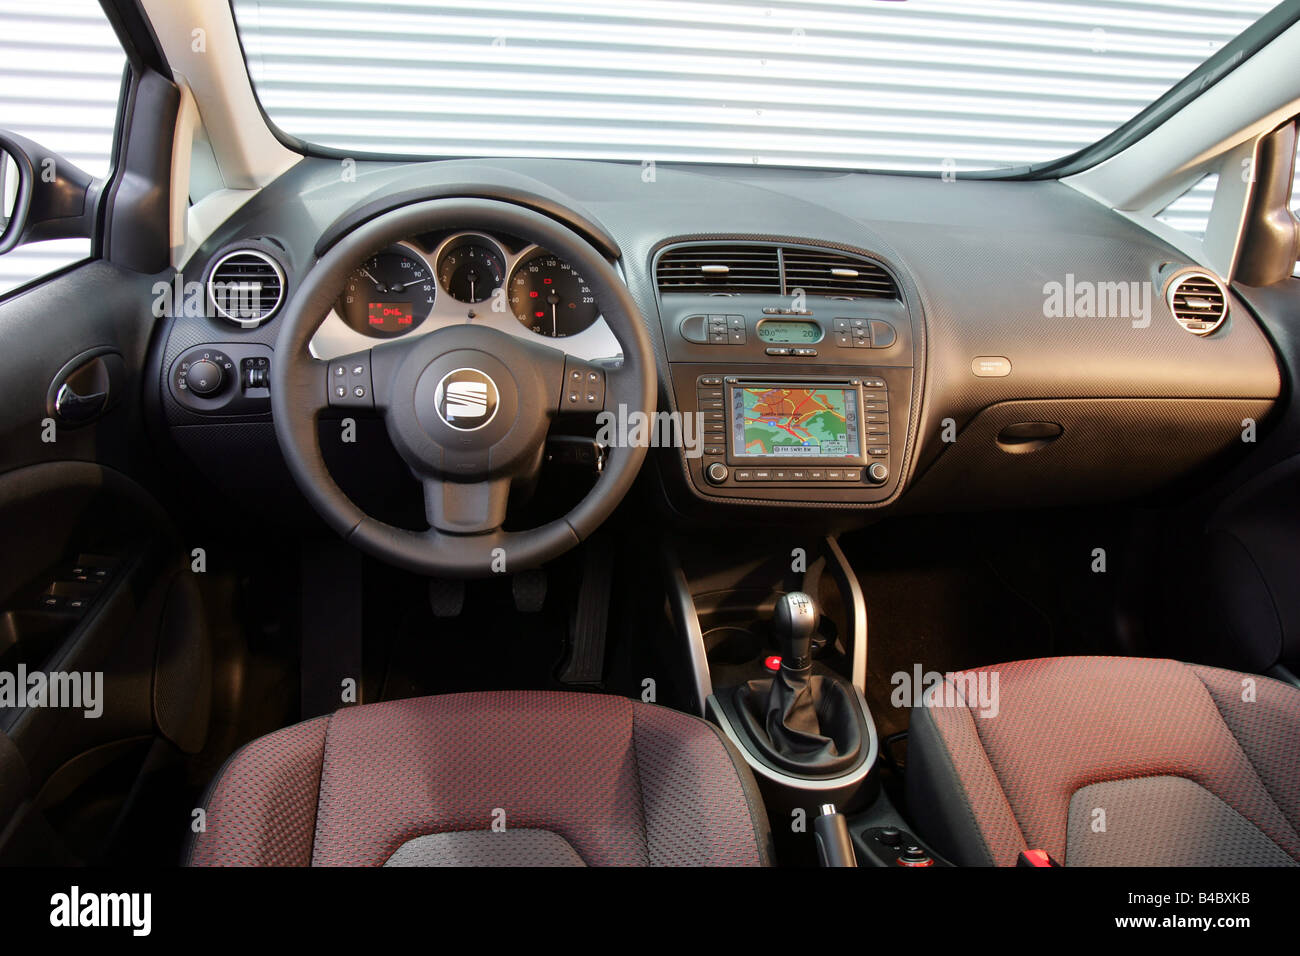 car seat altea black van model year 2004 interior view stock photo royalty free image. Black Bedroom Furniture Sets. Home Design Ideas